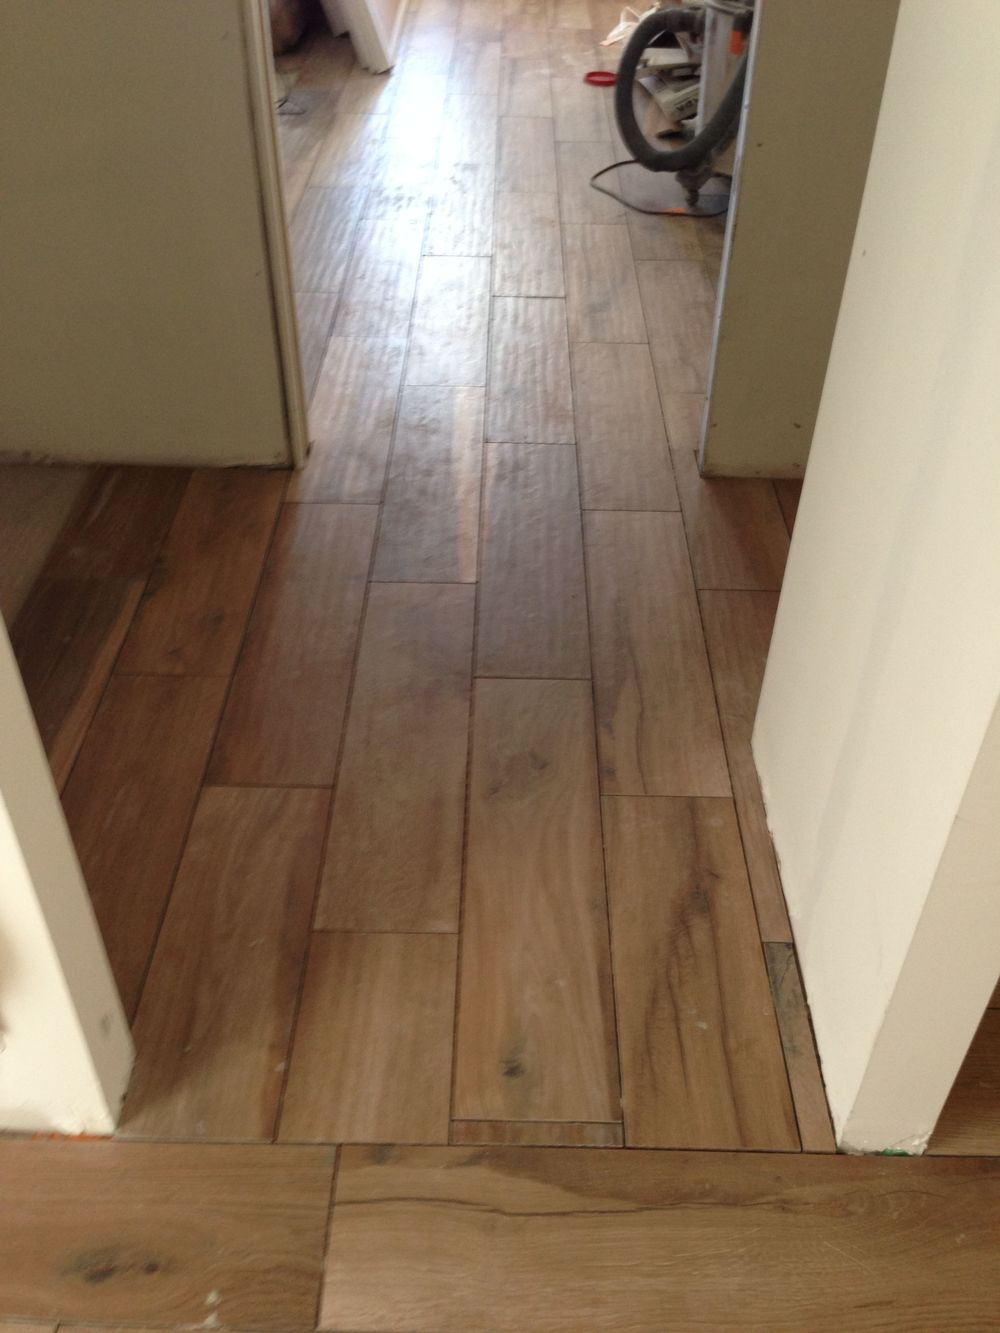 The floor looks like THIS! Not bad for a 2 month wait.